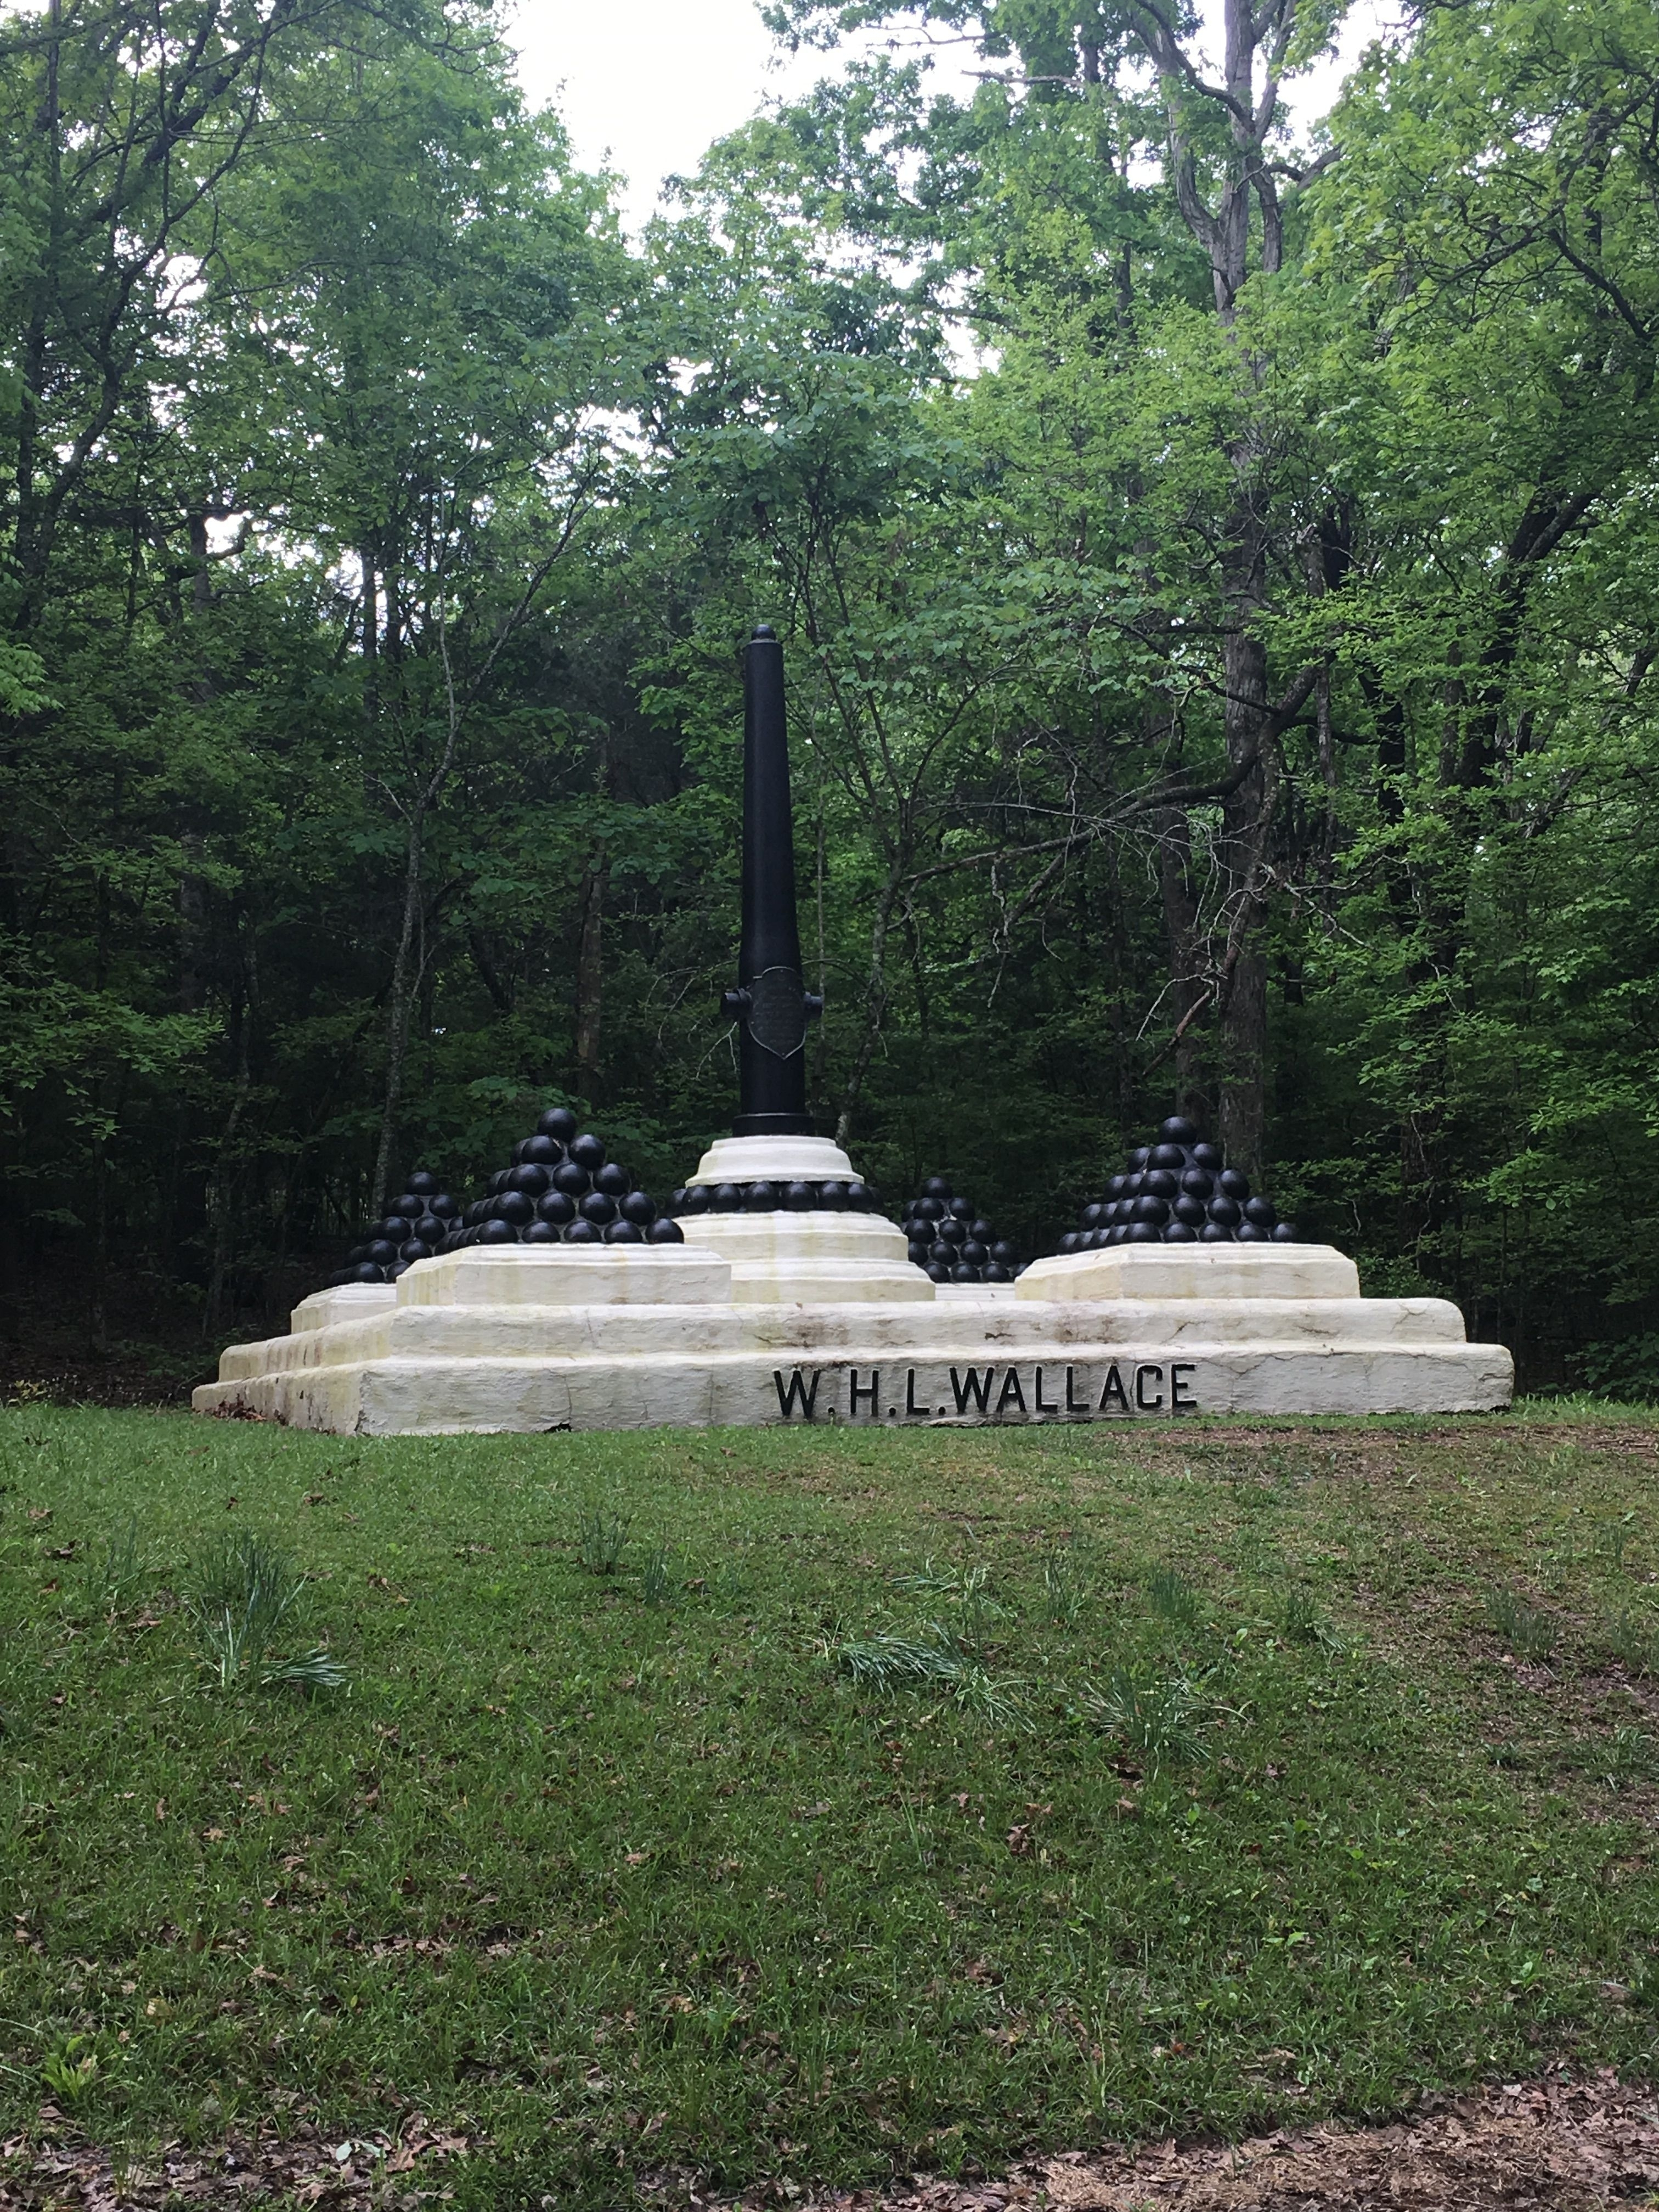 The W.H.L. Wallace Mortuary Monument at Shiloh